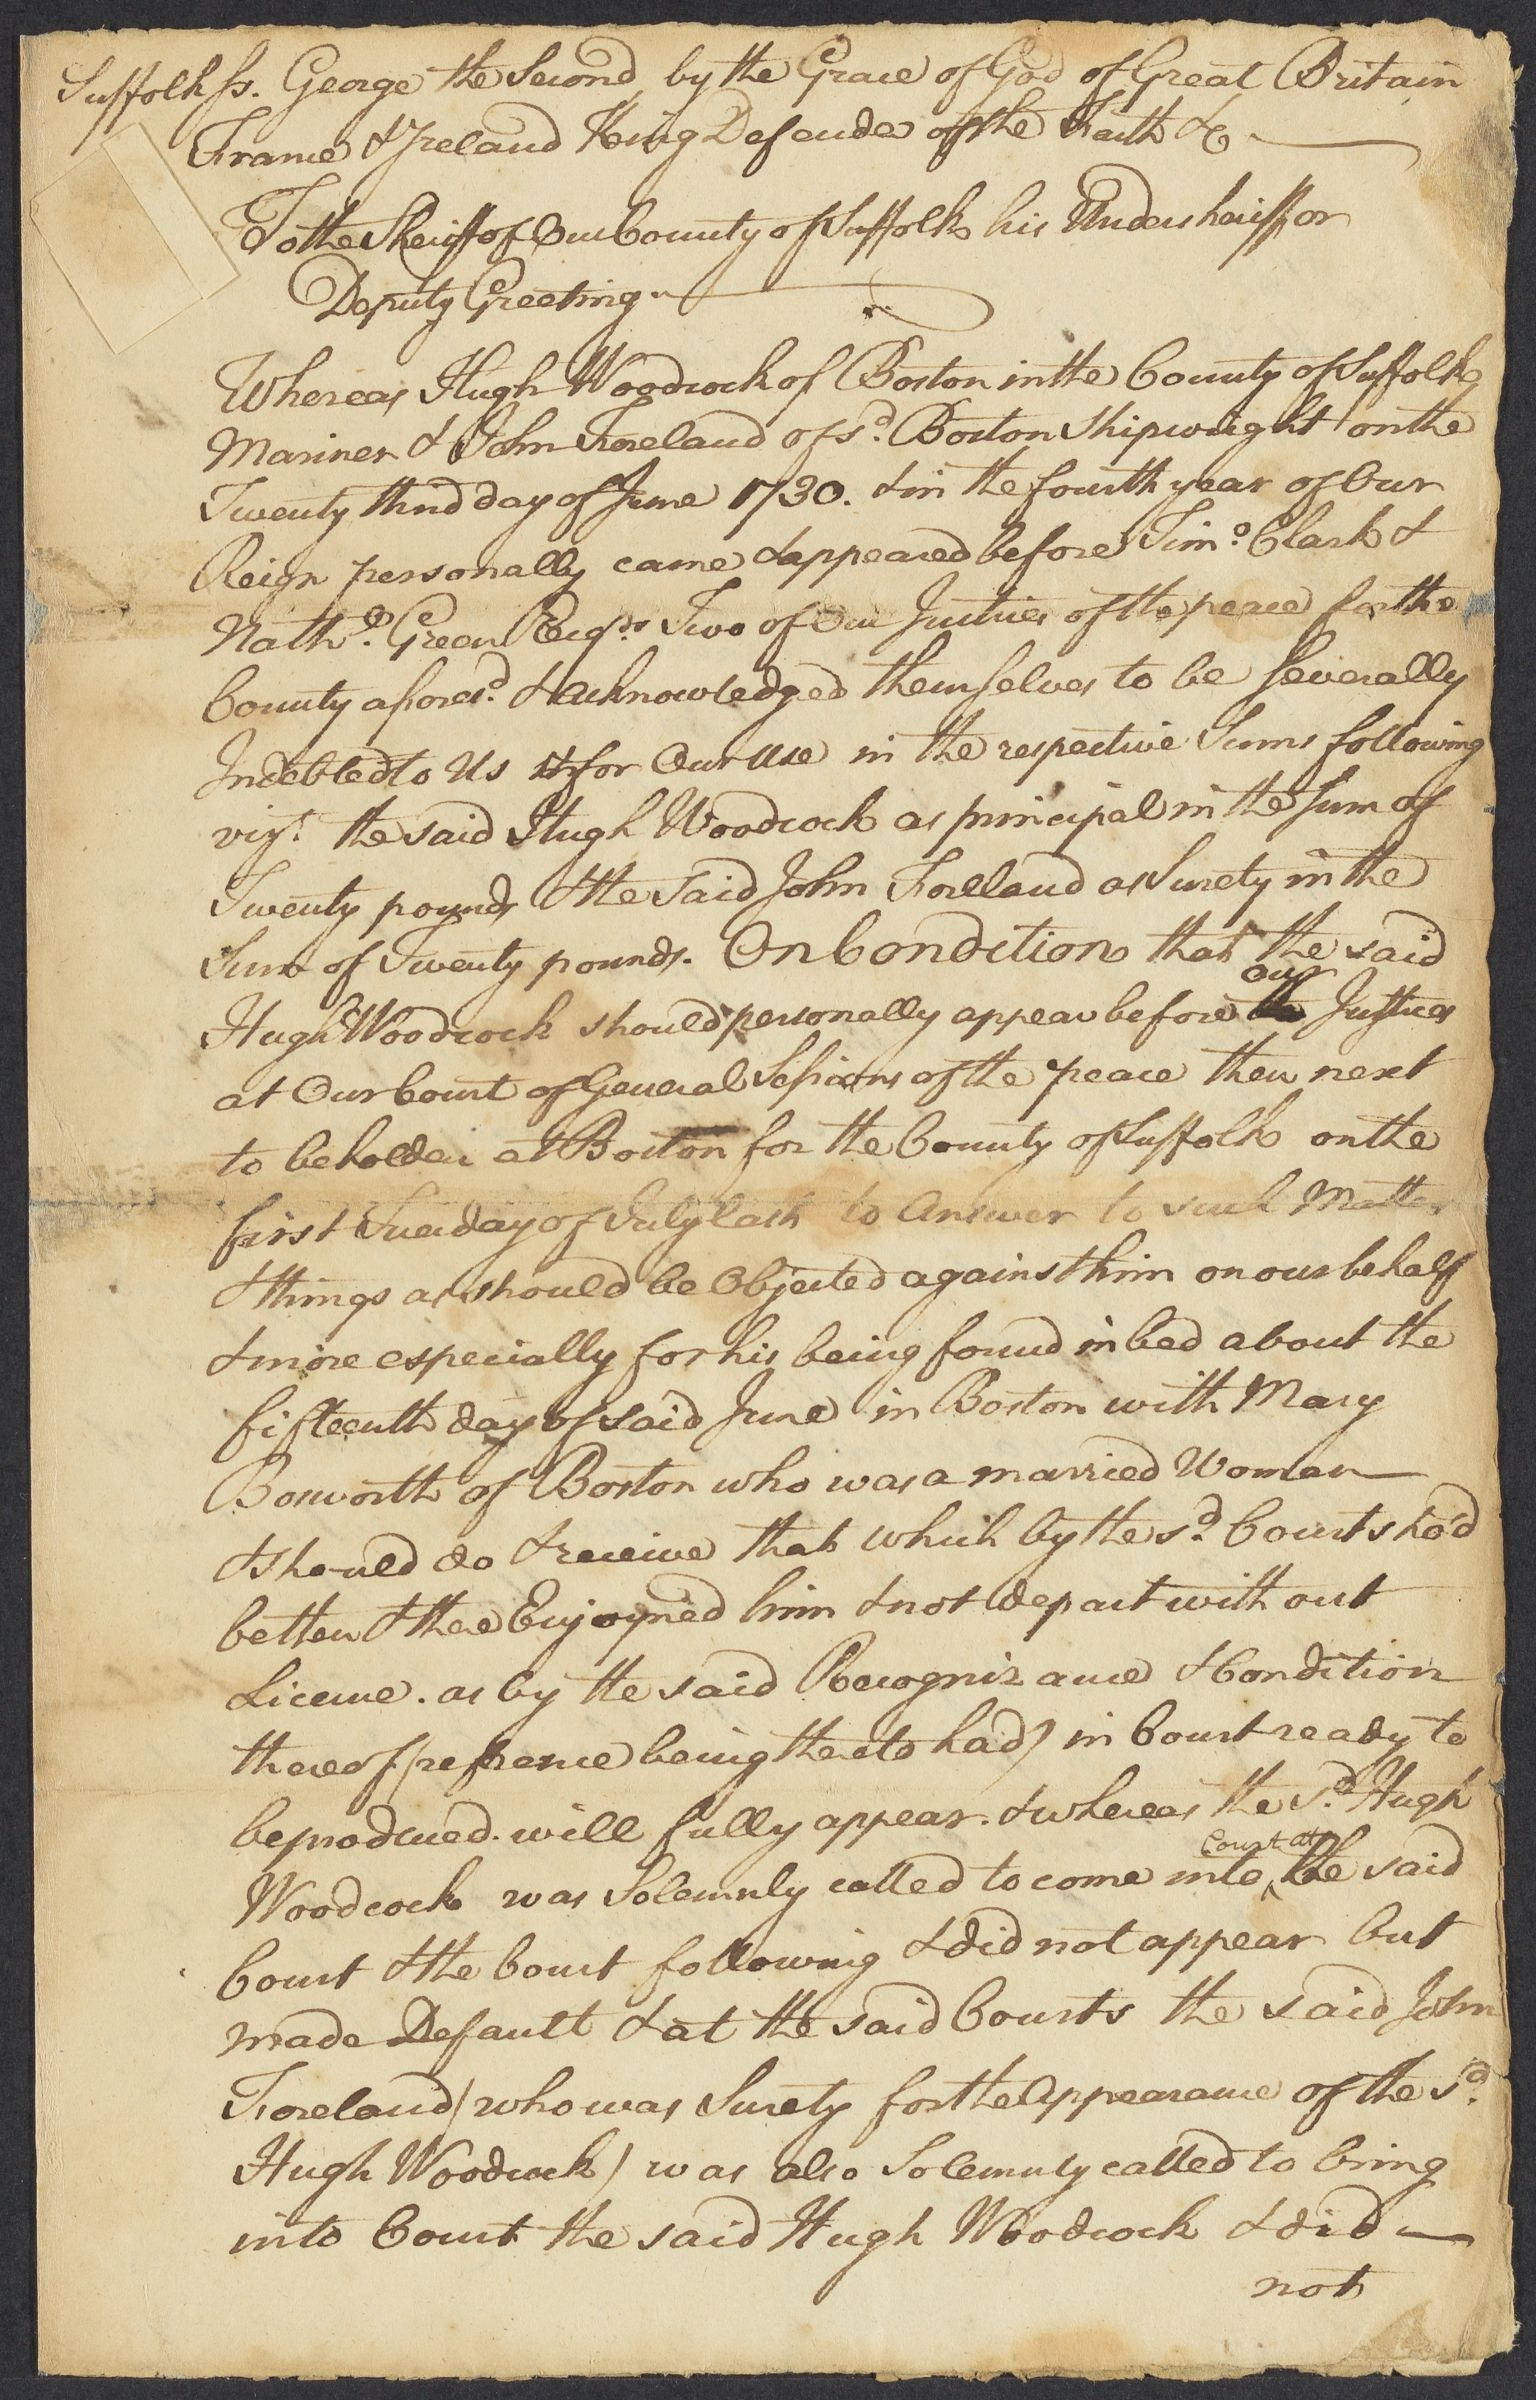 Summons and recognizance for Hugh Woodcock, 1730